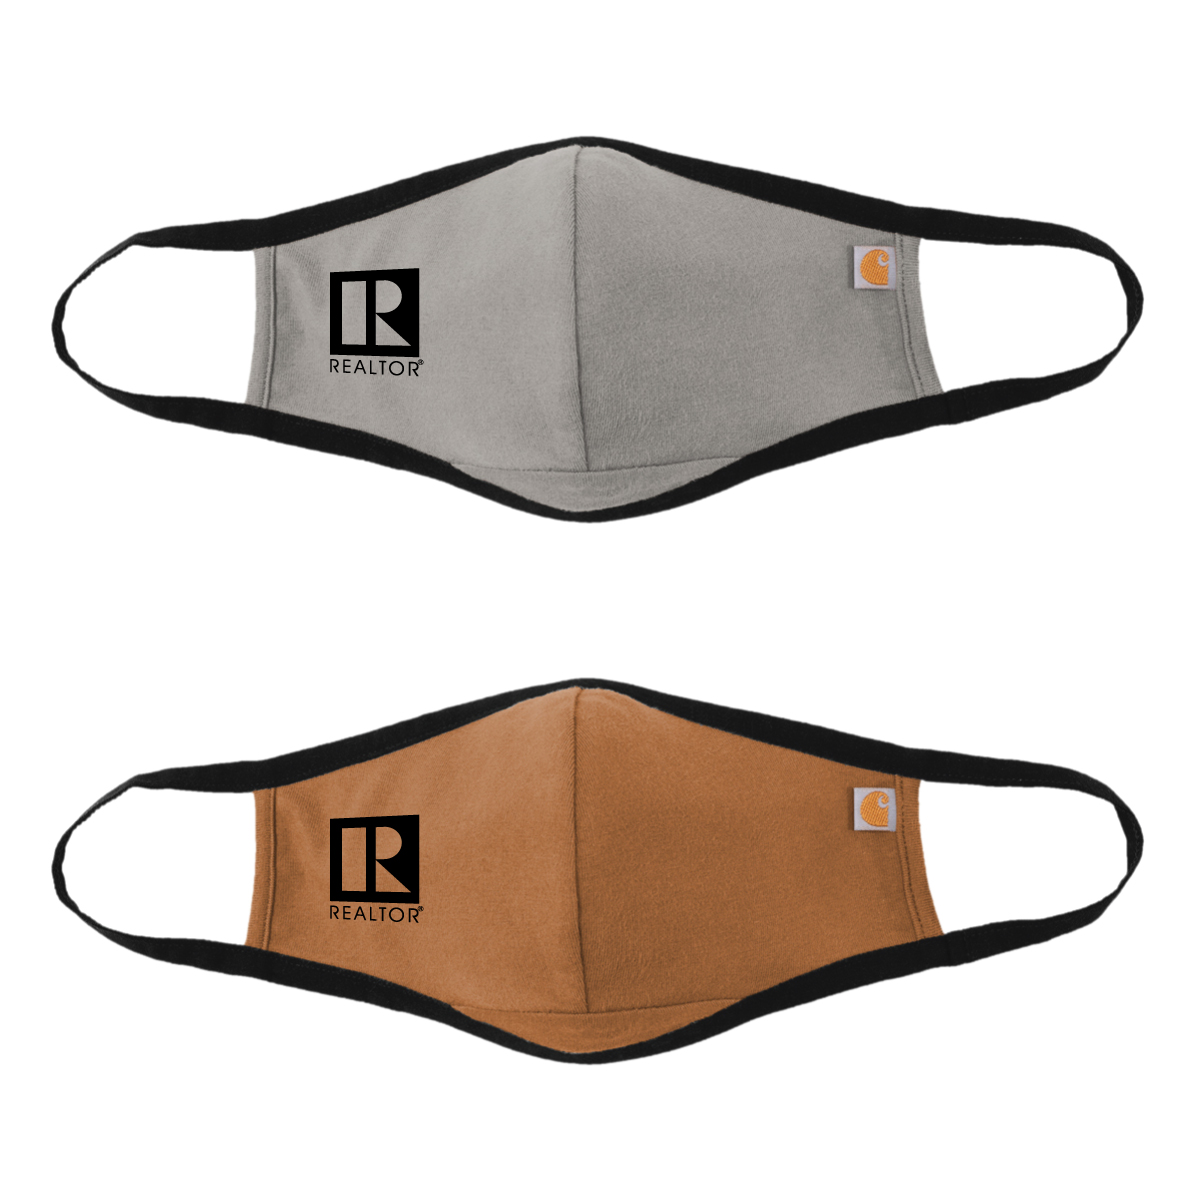 Special Order: Carhartt® 2 Layer Mask (Grey or Brown) Faces,Masks,Shields,COVID,COVID-19,SARS,Virus,Viruses,Coughs,Safety,Carhart,Car,Hart